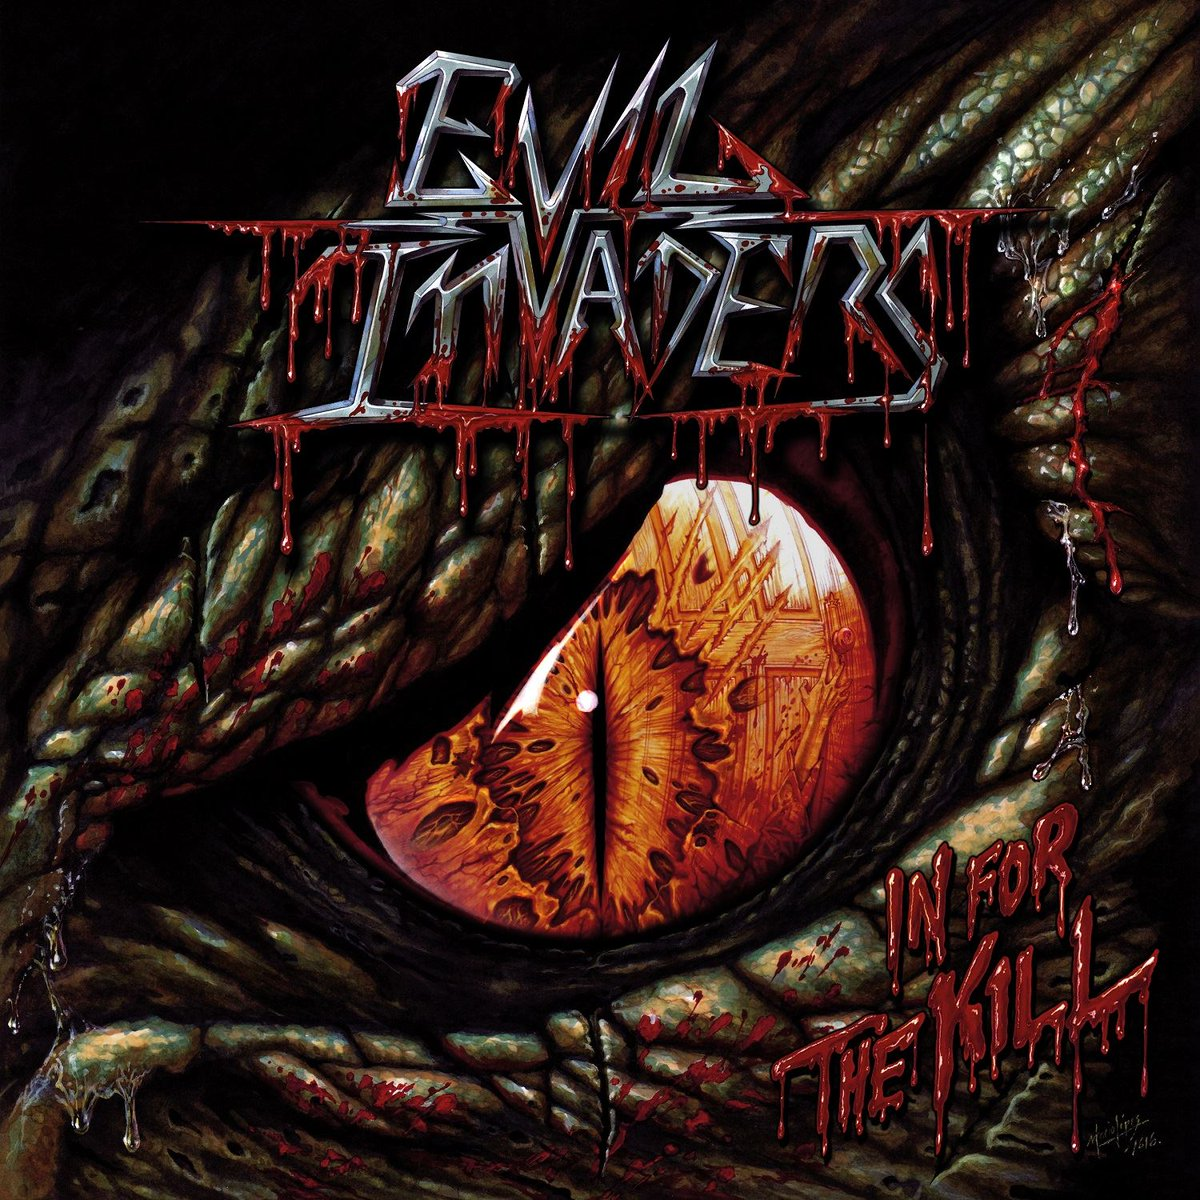 We're going #InForTheKill! @EvilInvadersBE to release new EP 9/30 w/ 2 live & 2 new tracks! Pre-orders coming soon!pic.twitter.com/KecOcTHRYy